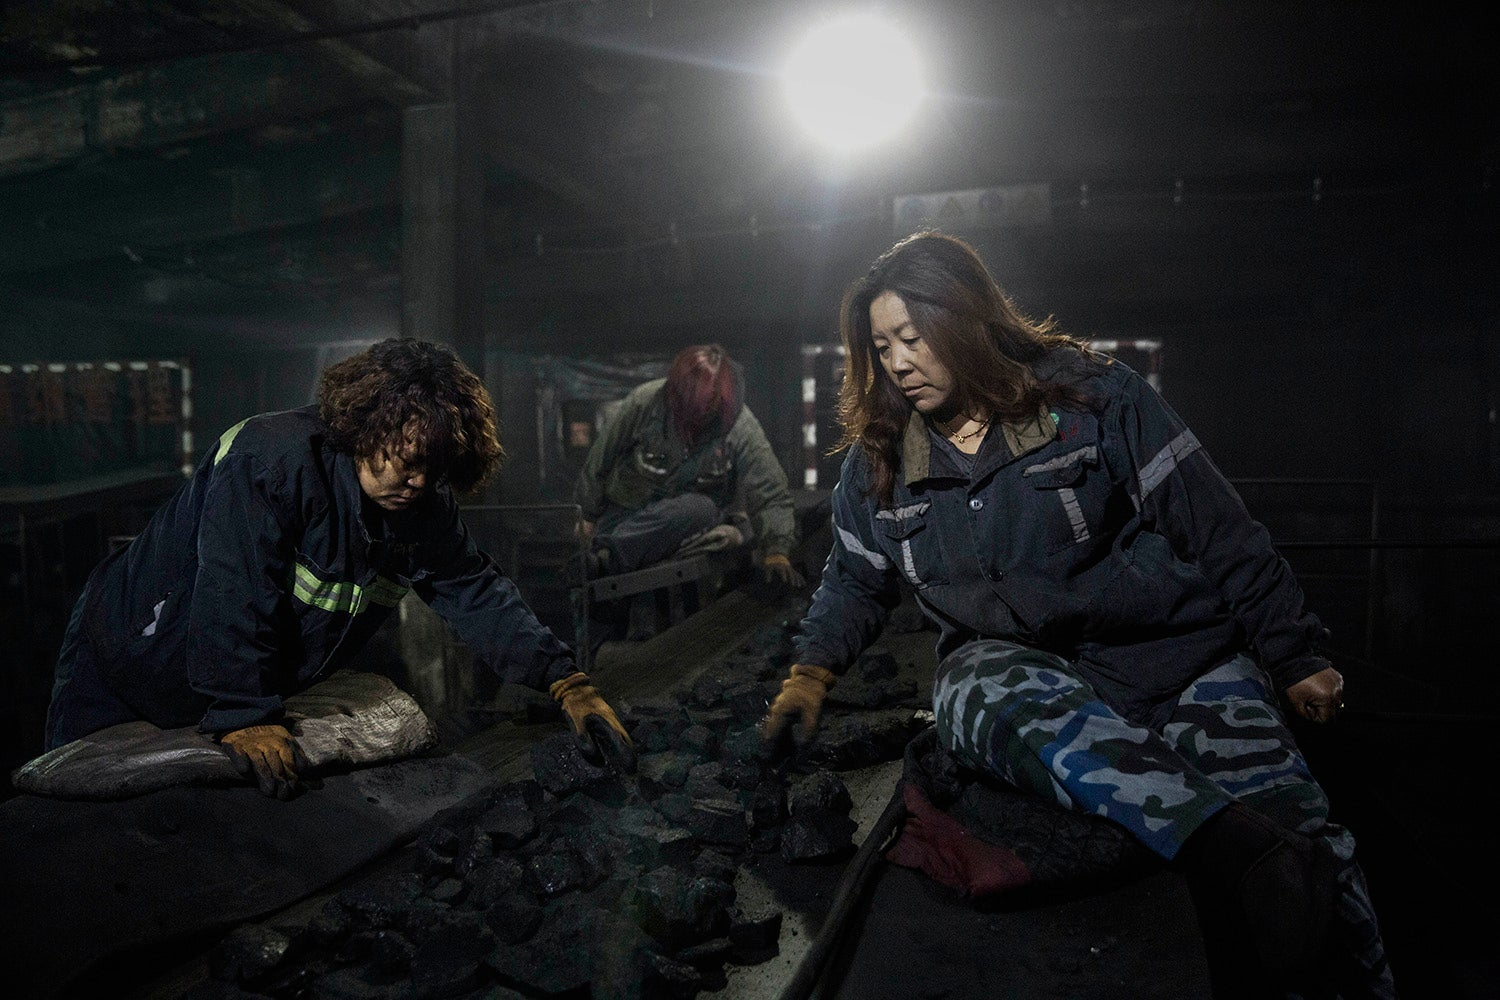 Photographs Capture What Life is Like in One of the World's Dirtiest Pits